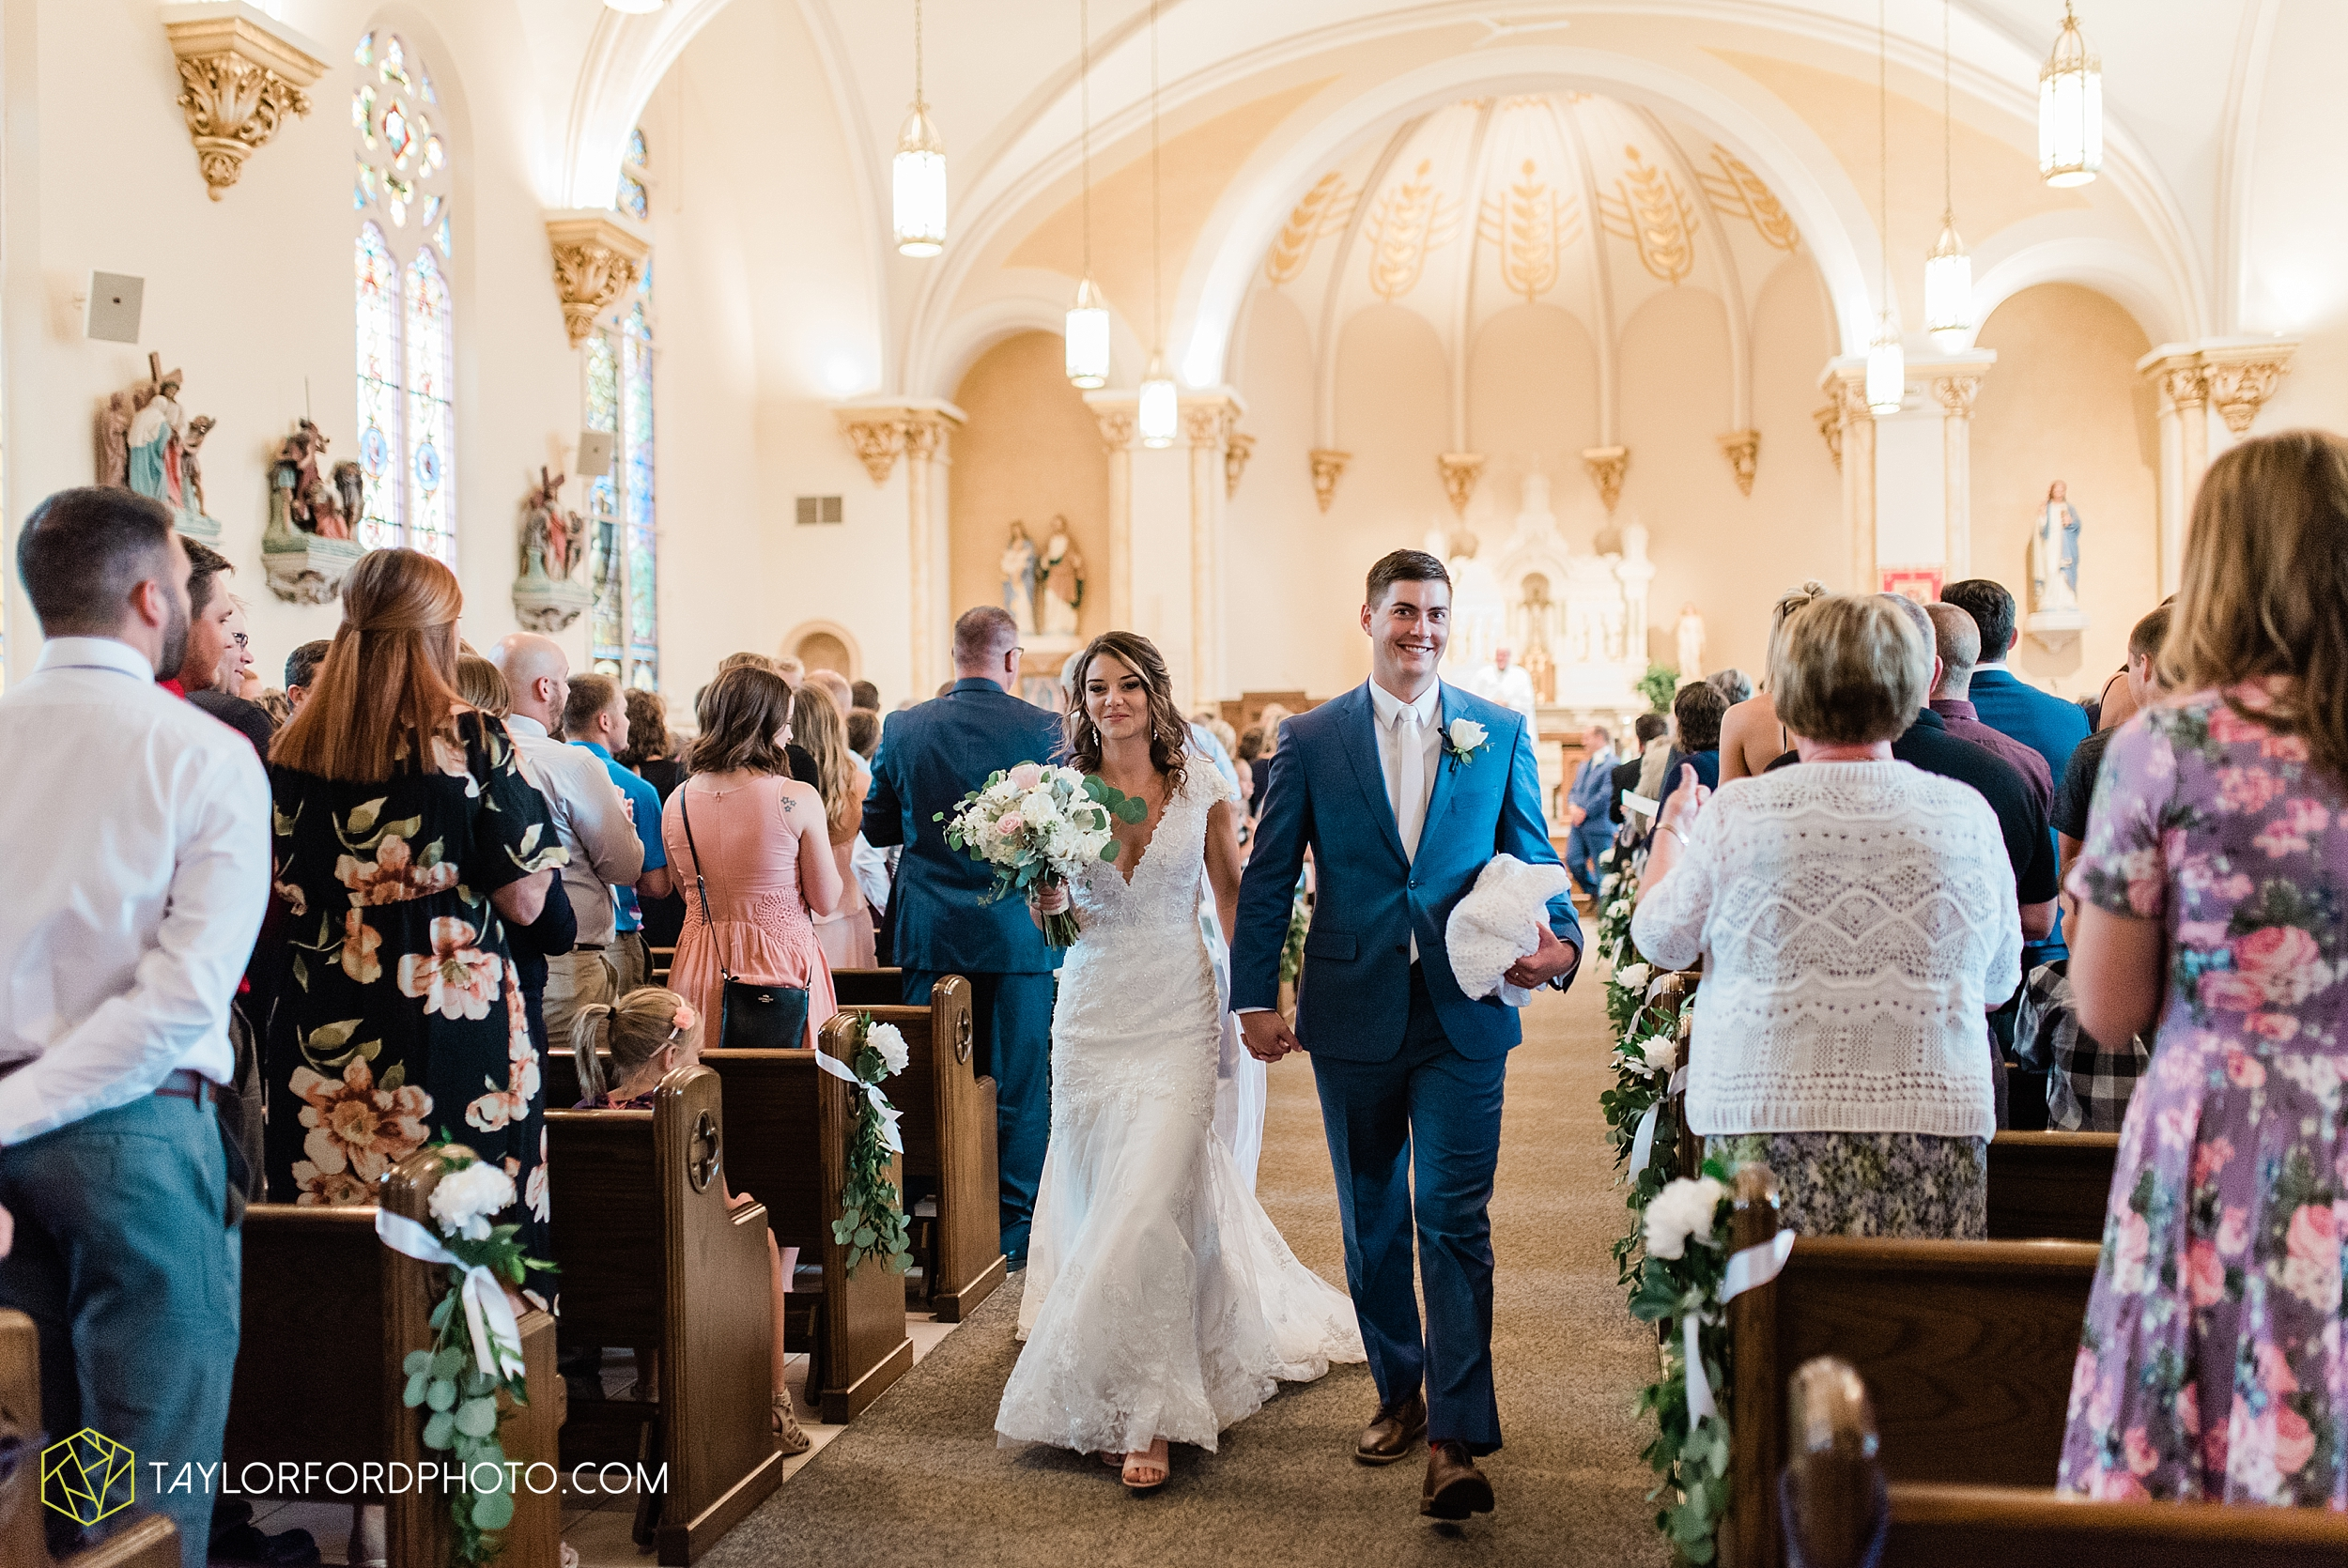 kacee-haden-sholl-second-story-saint-marys-knights-of-columbus-defiance-ohio-wedding-photographer-taylor-ford-photography_0158.jpg